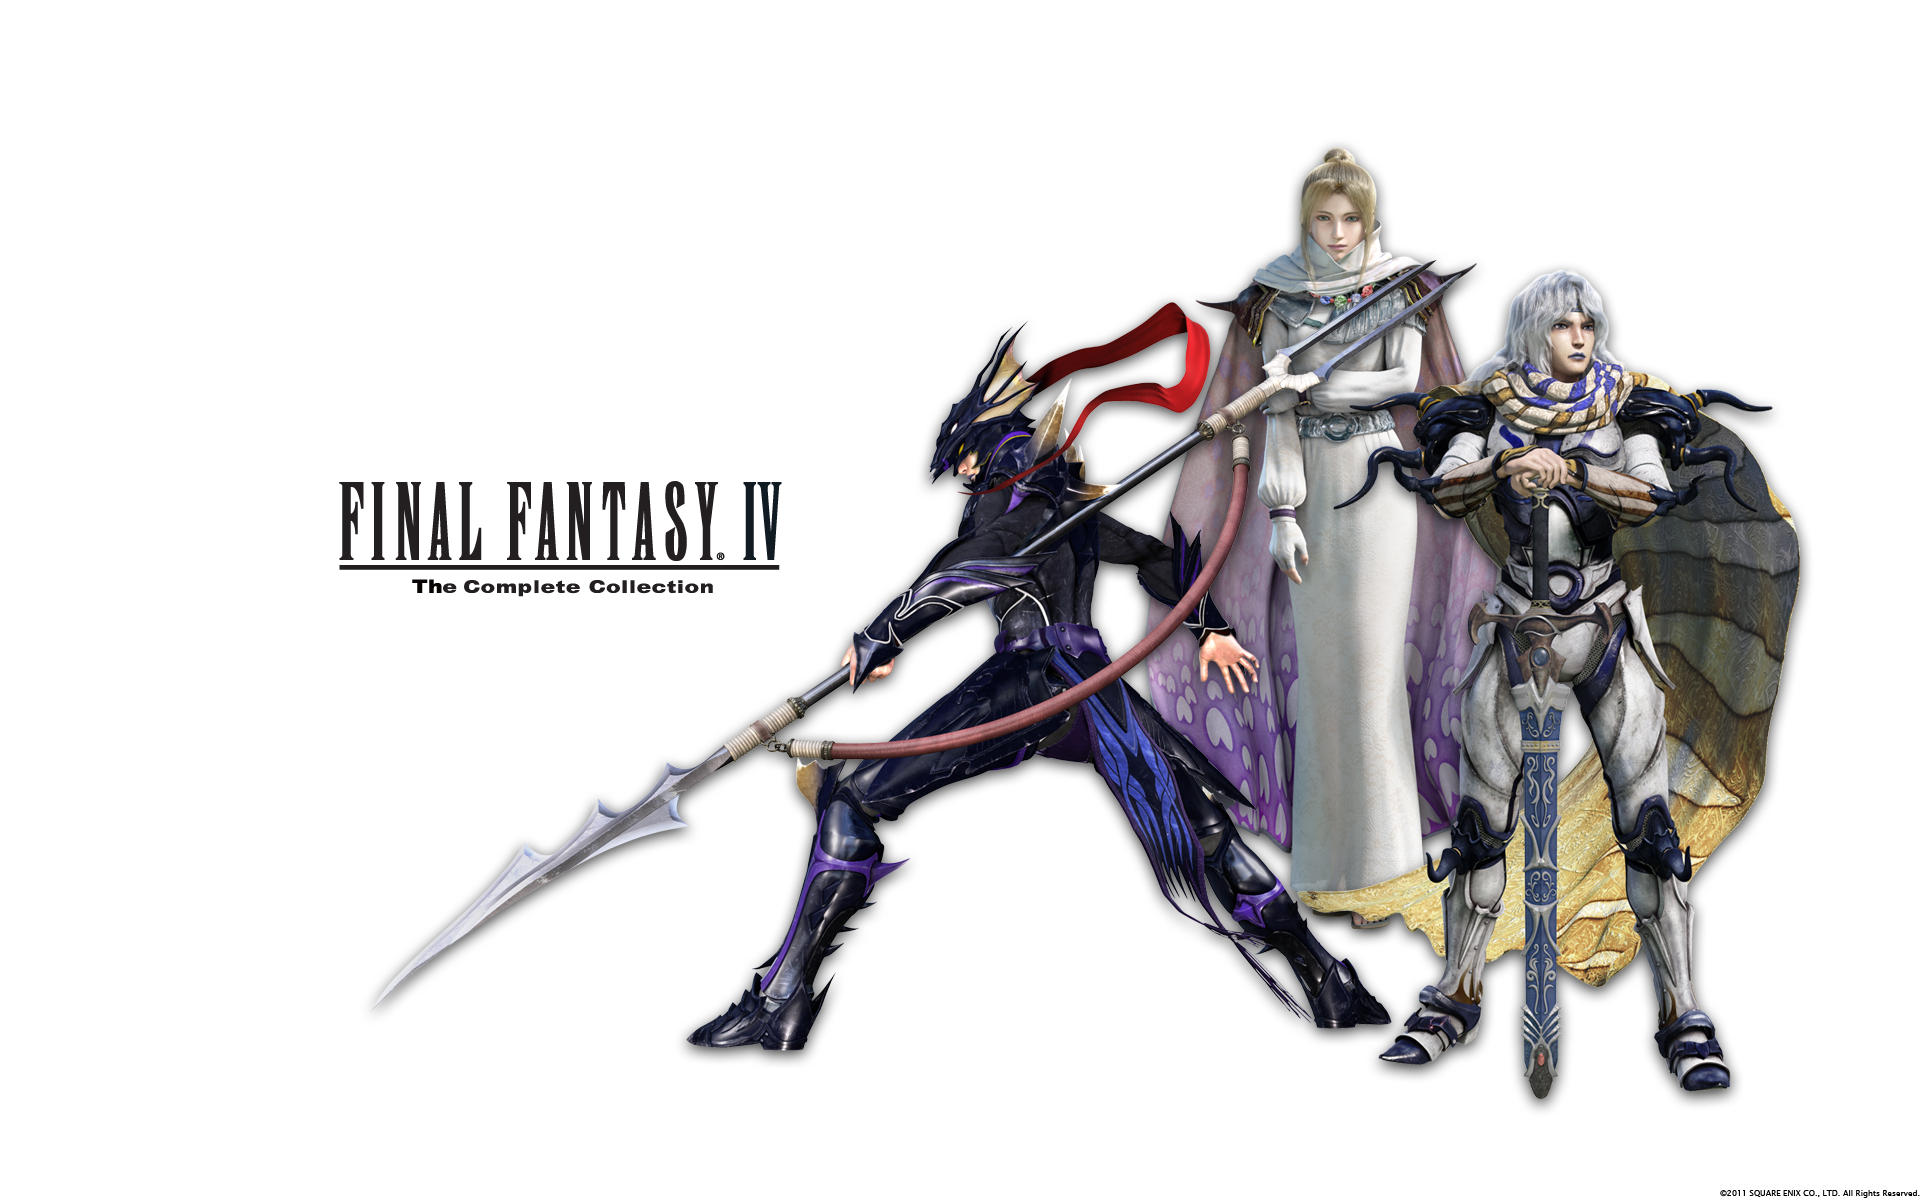 Final fantasy kain wallpaper - photo#19